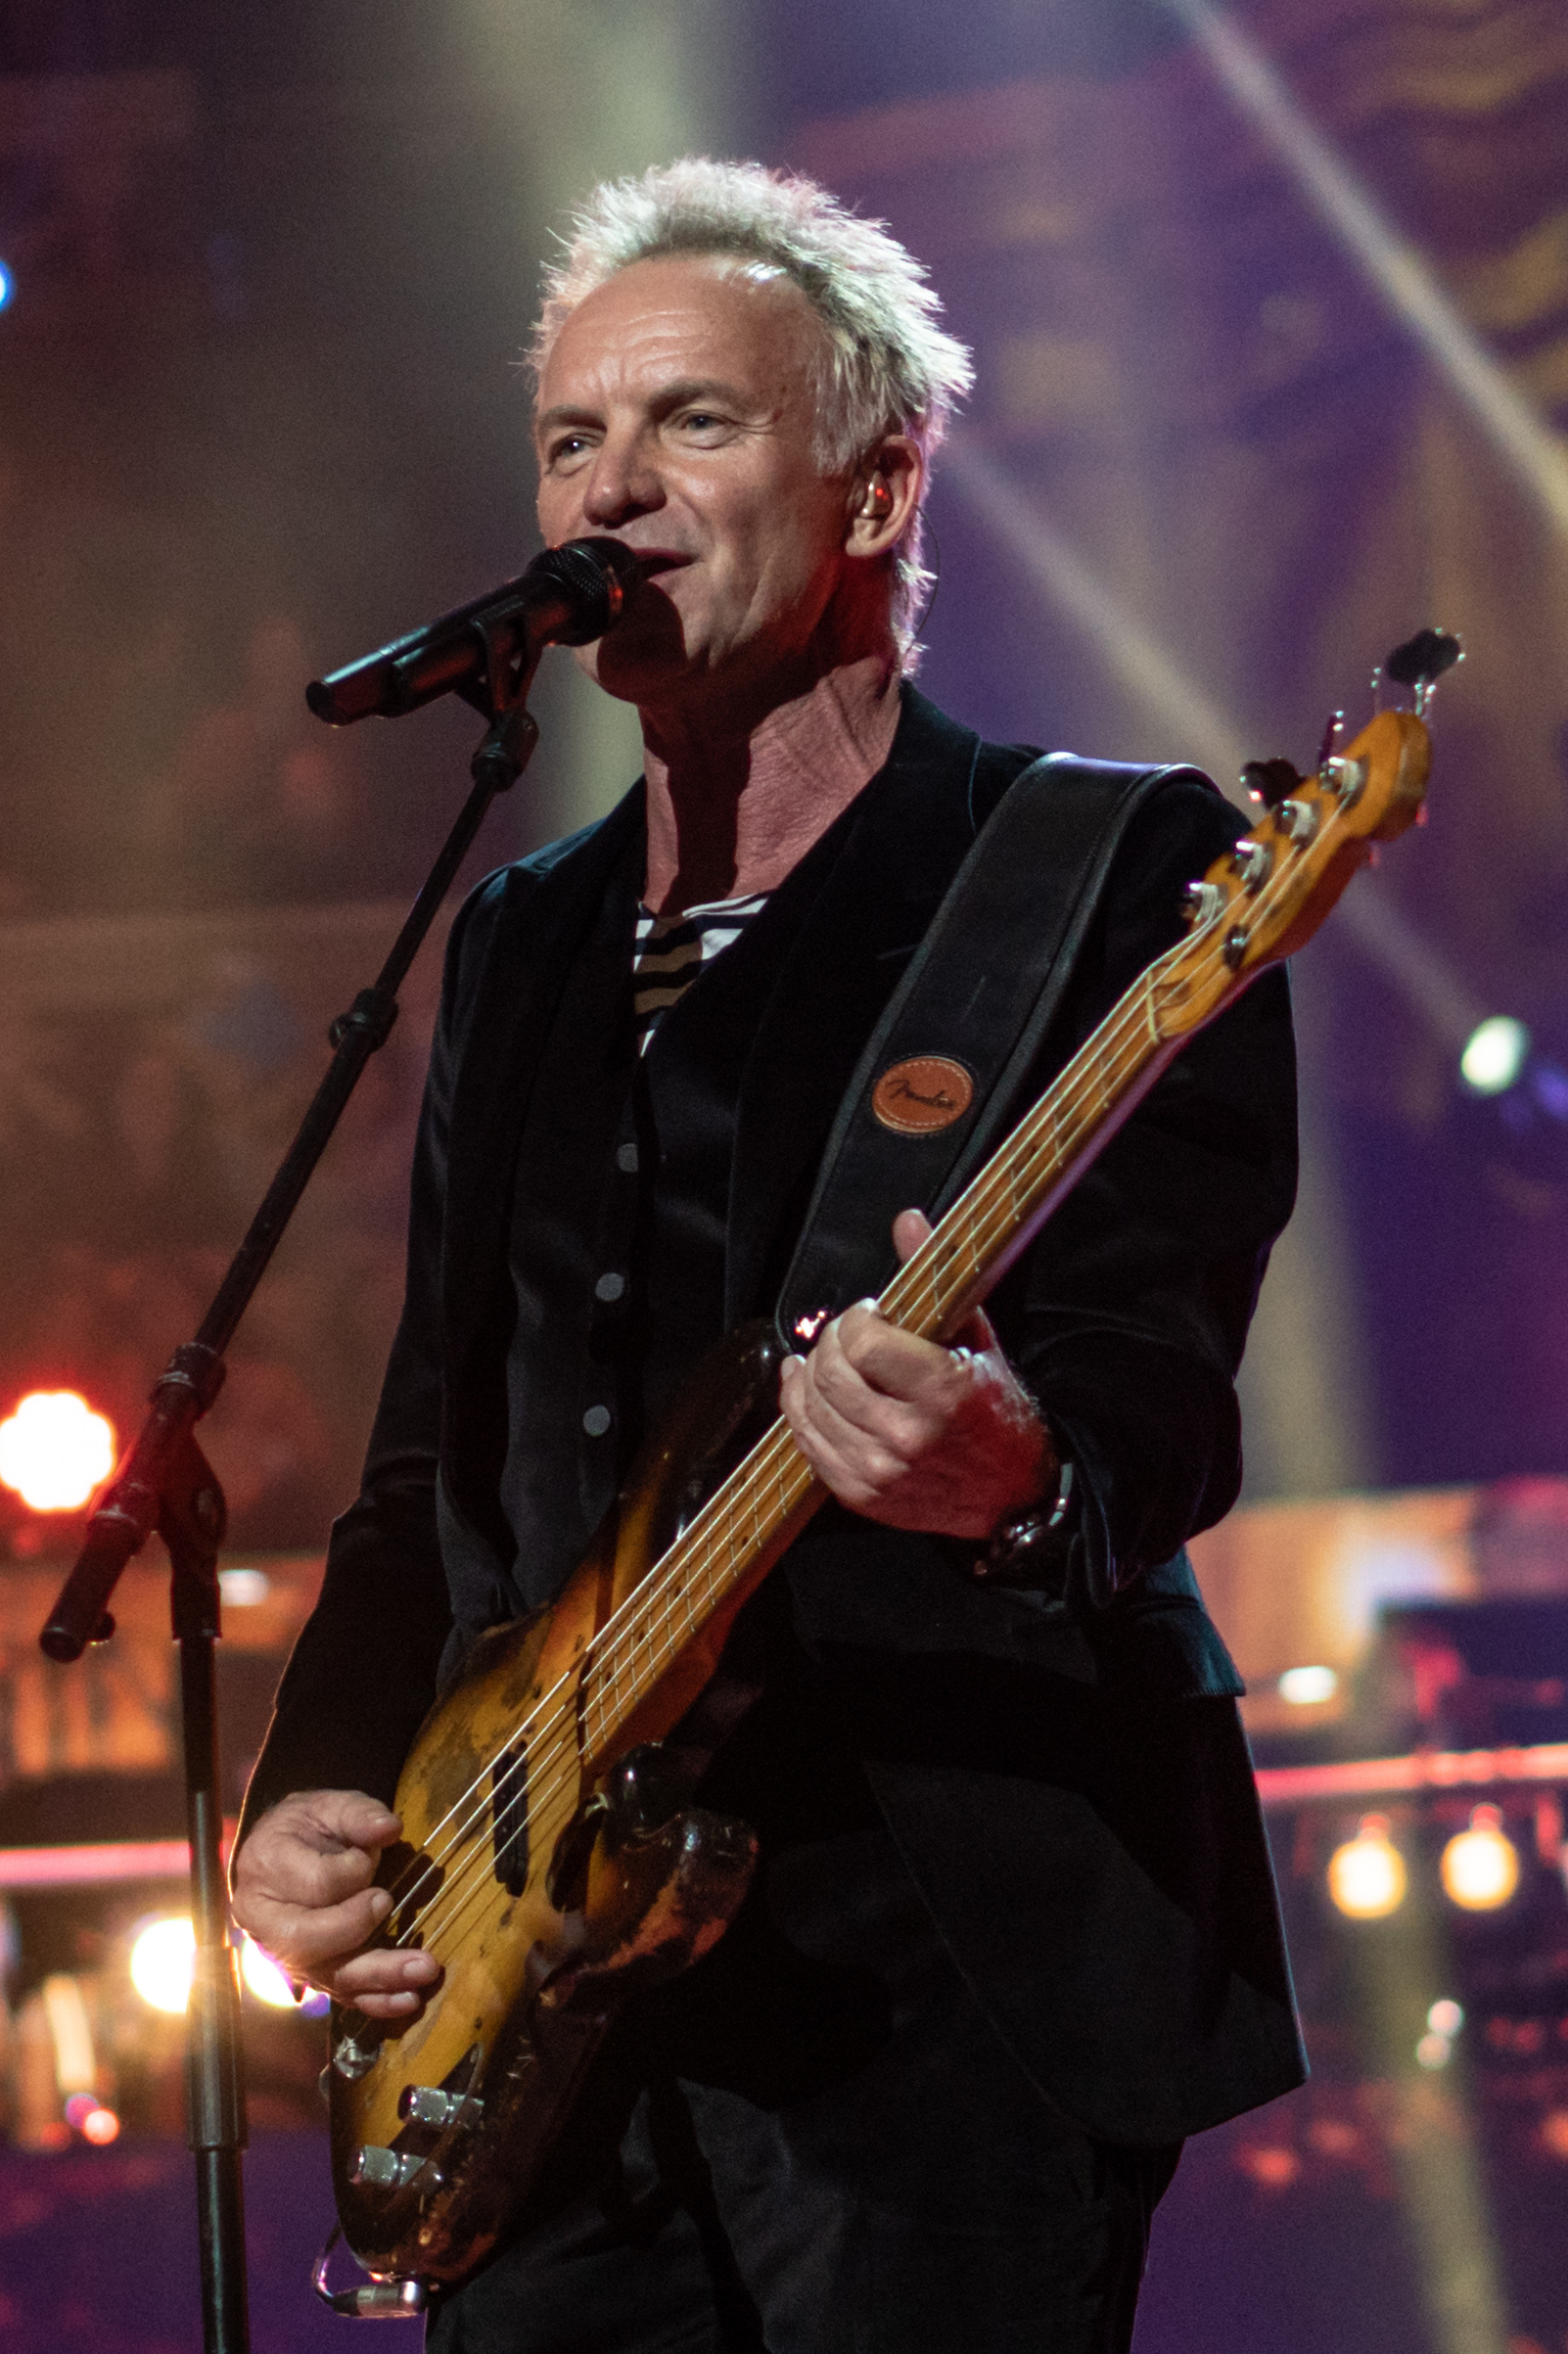 Sting performing at [[The Queen's Birthday Party]] in 2018